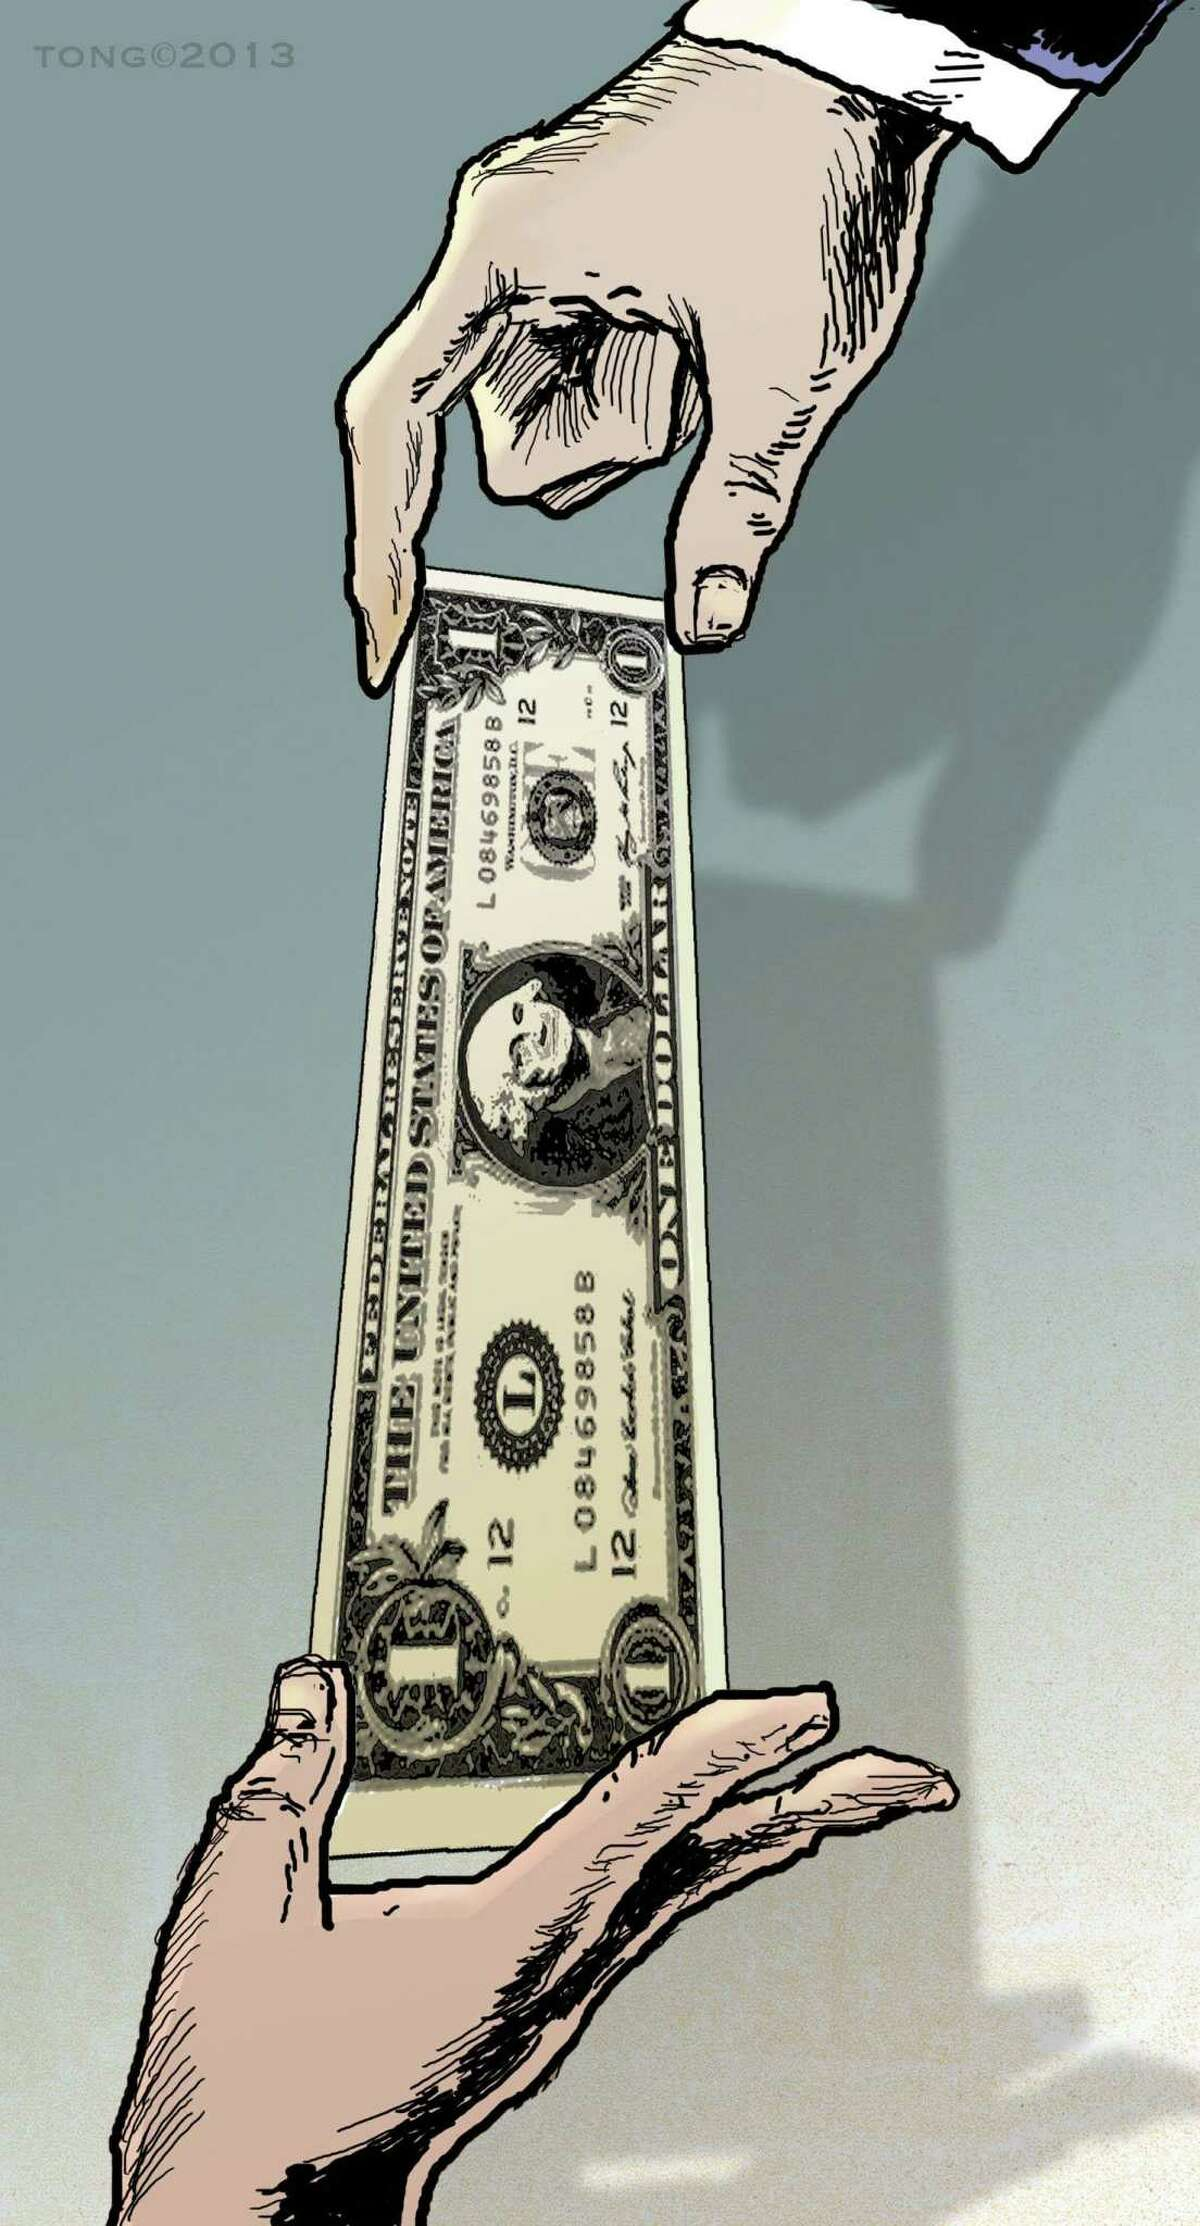 This artwork by Paul Tong relates to the current debate over the minimum wage.